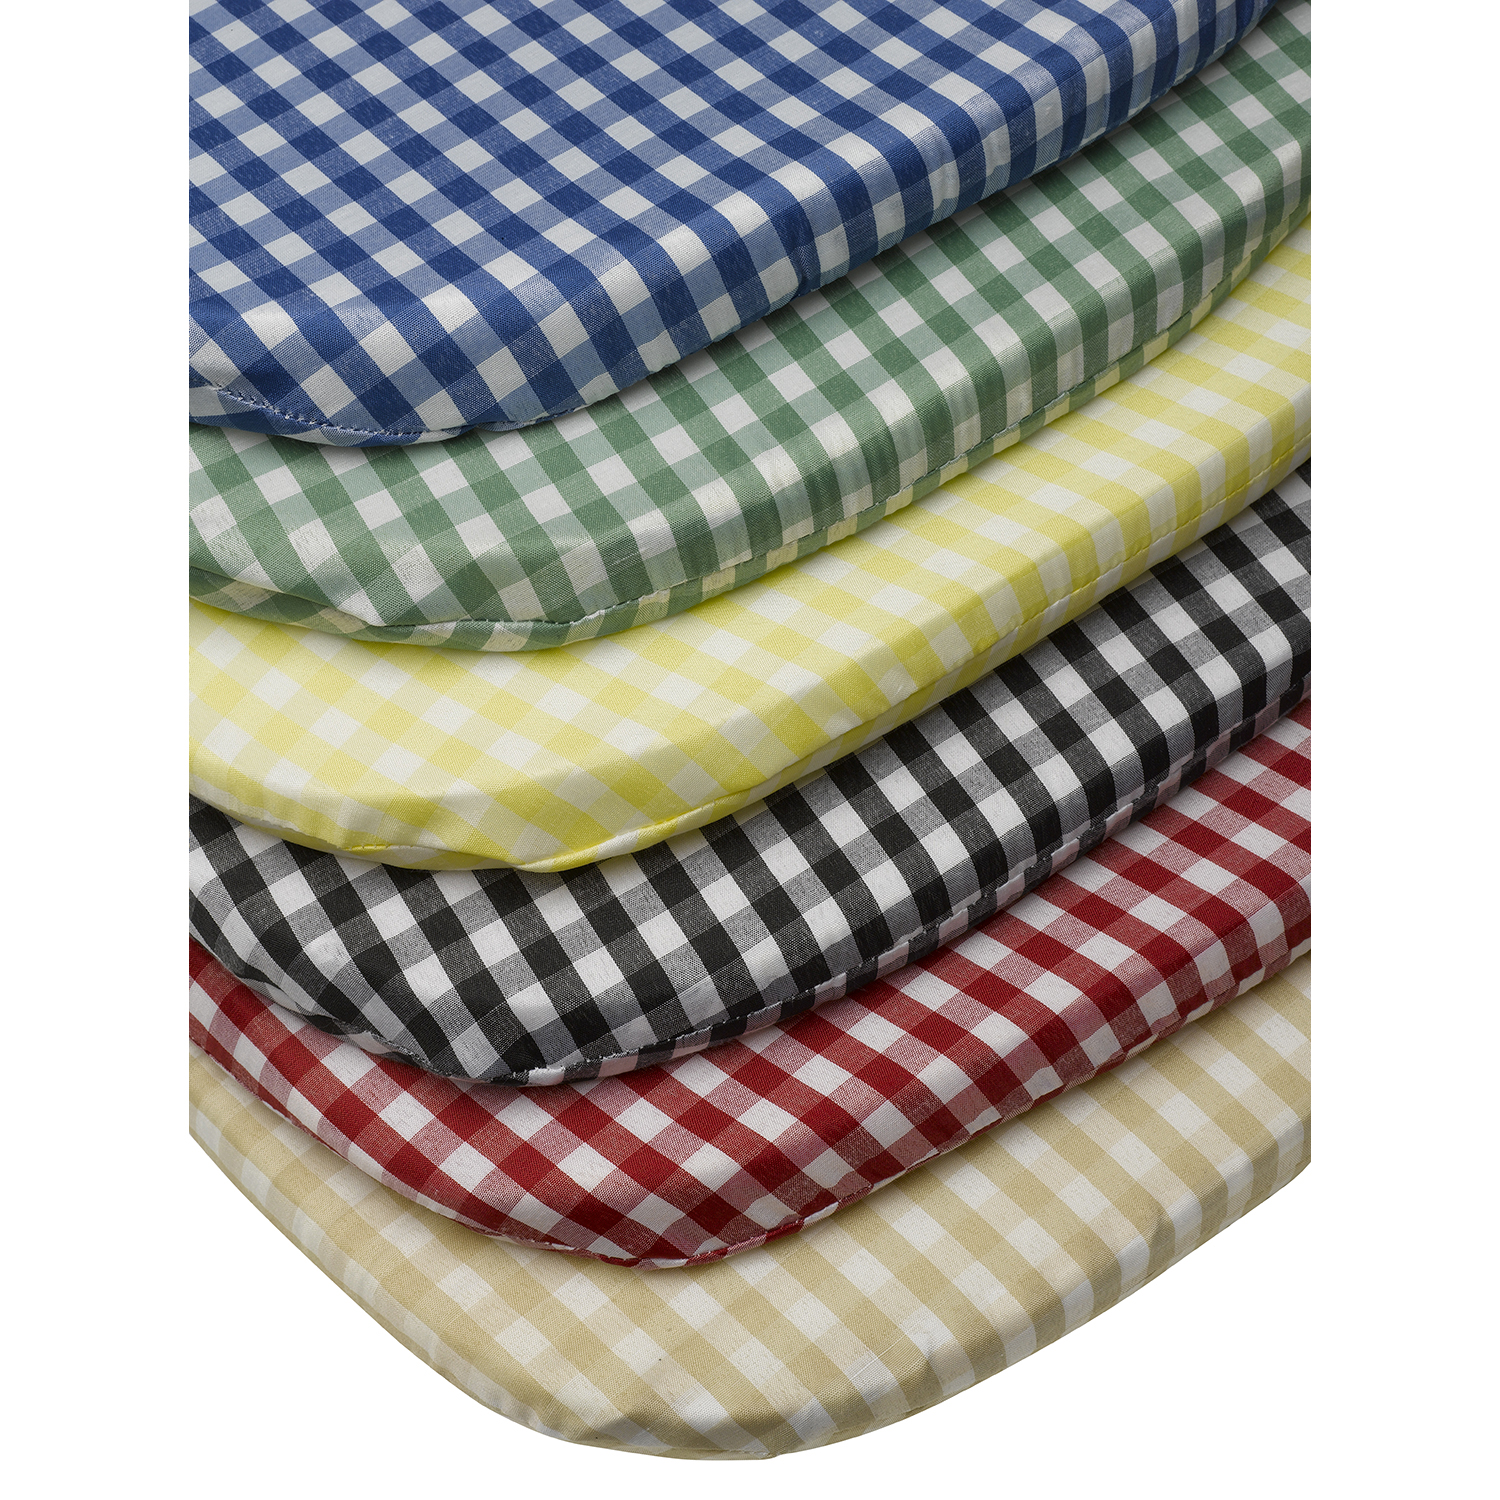 outdoor dining chair cushions. Tie On Rounded Gingham Chair Seat Pad Cushion Outdoor Garden Dining Checked Cushions A